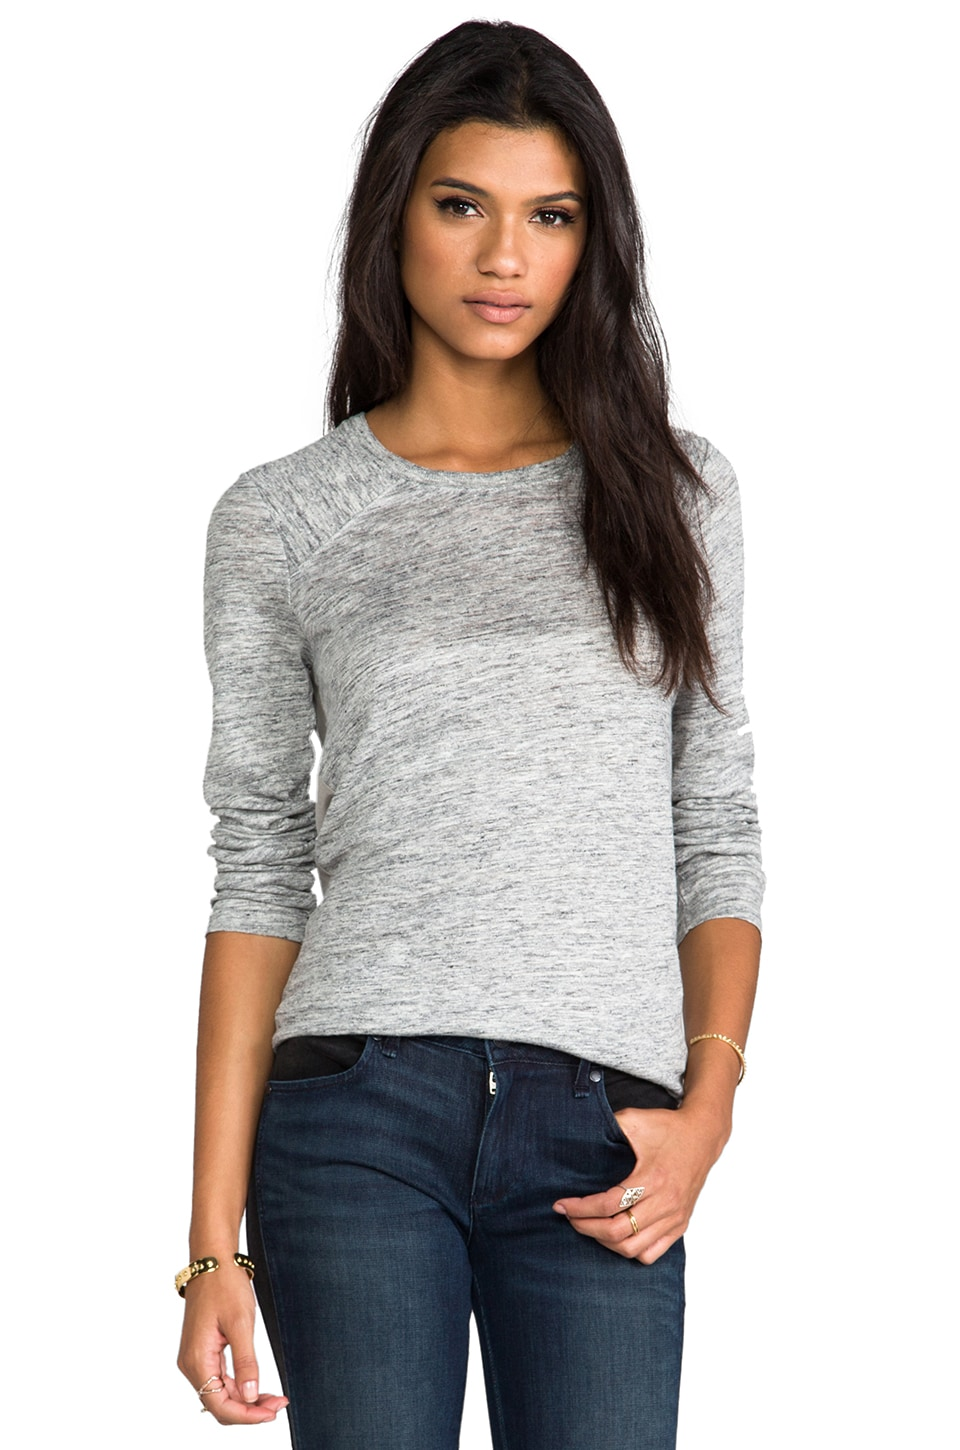 Marc by Marc Jacobs Carmen Jersey Top in Grey Melange